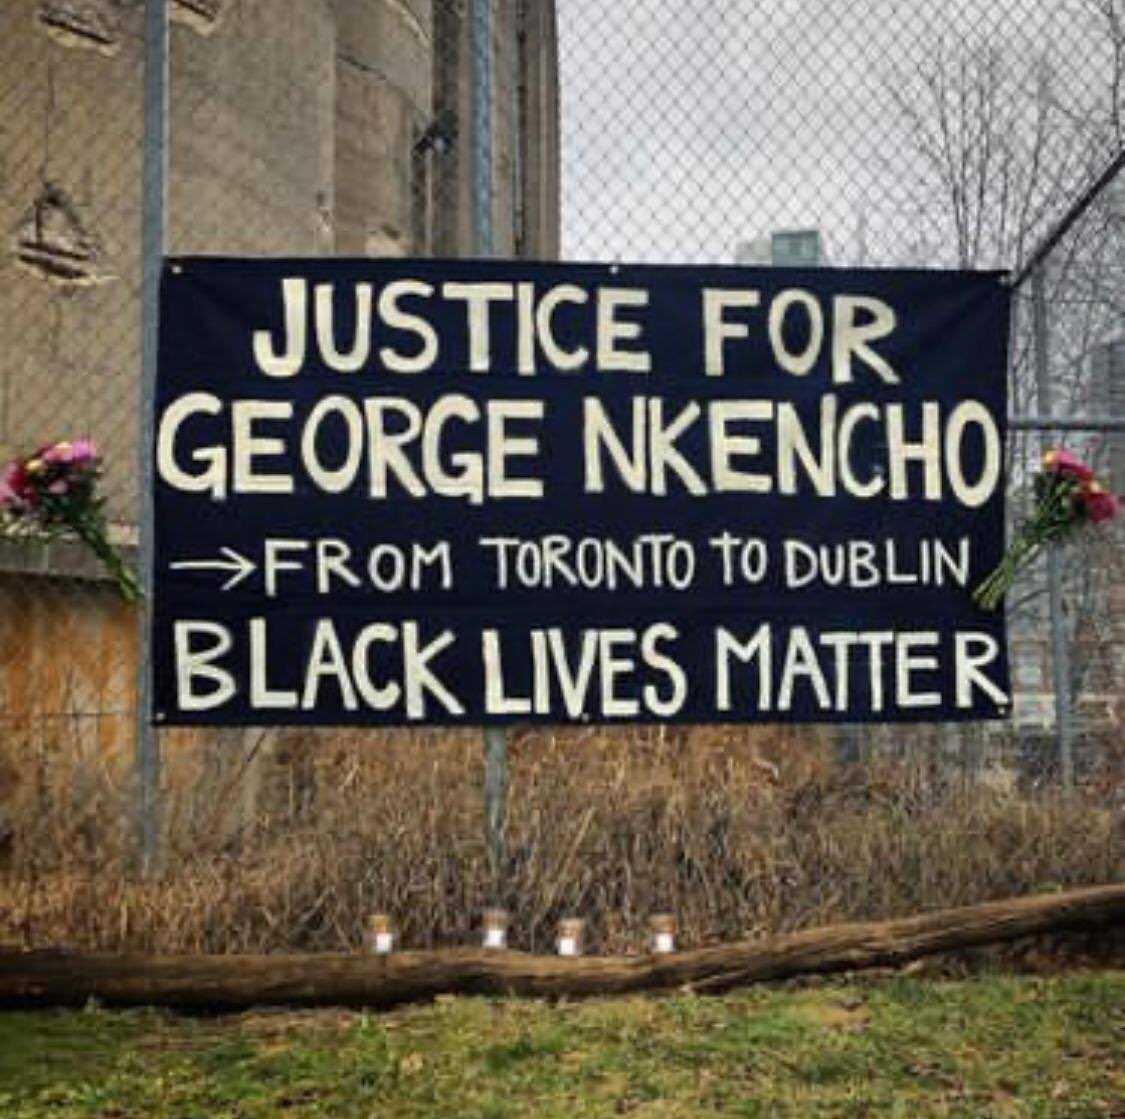 The intersection of race and mental health affects lives. Join the family of #GeorgeNkencho and the African Irish community to say #neveragain. 🕯🕯  #JusticeForGeorgeNkencho #ripgeorgenkencho